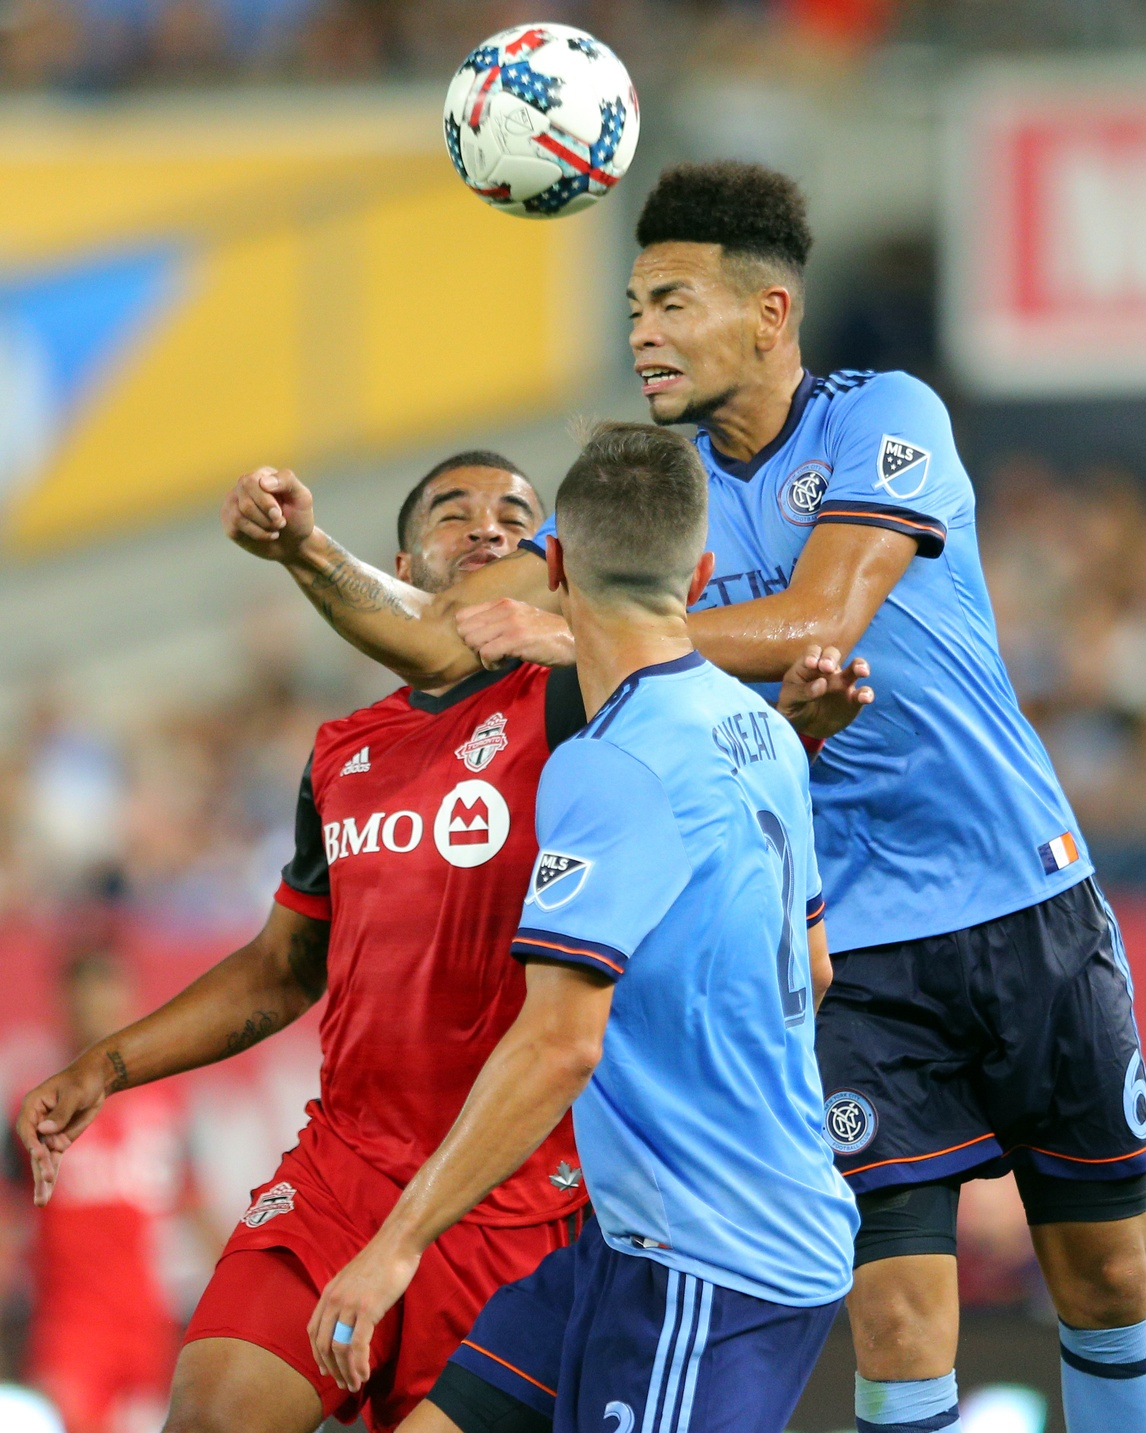 ul 19, 2017; New York, NY, USA; New York City FC defender Alexander Callens (6) heads the ball against Toronto FC forward Jordan Hamilton (22) during the second half at Yankee Stadium. Credit: Brad Penner-USA TODAY Sports